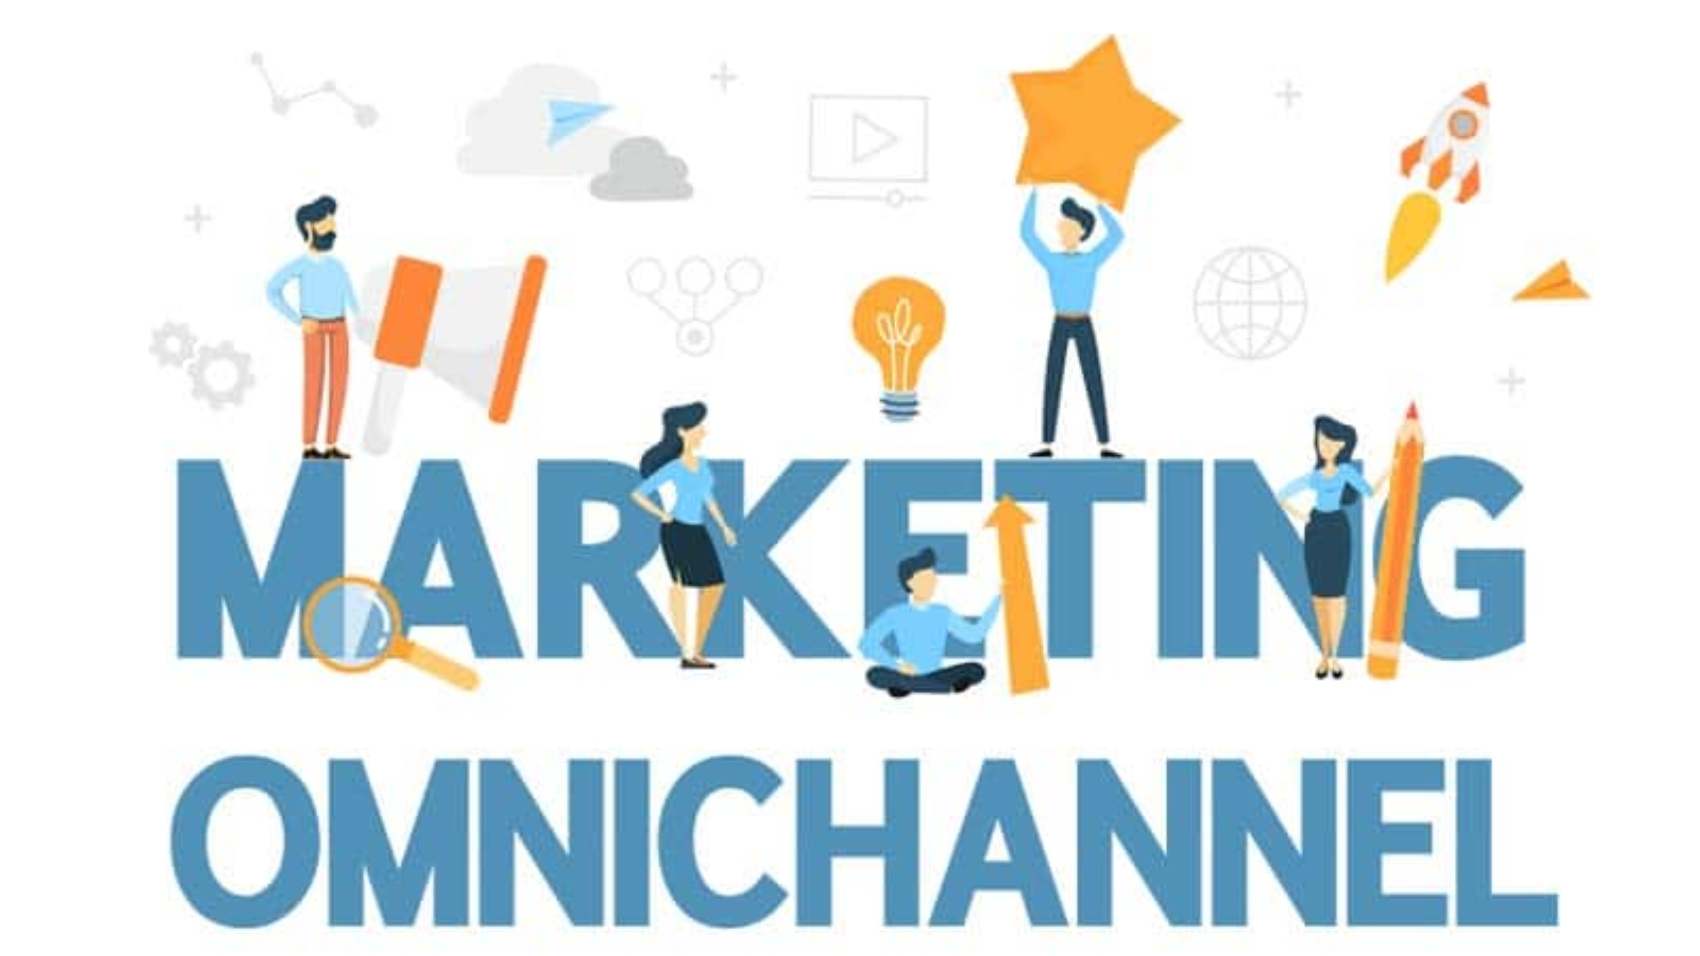 o que é marketing omnichannel